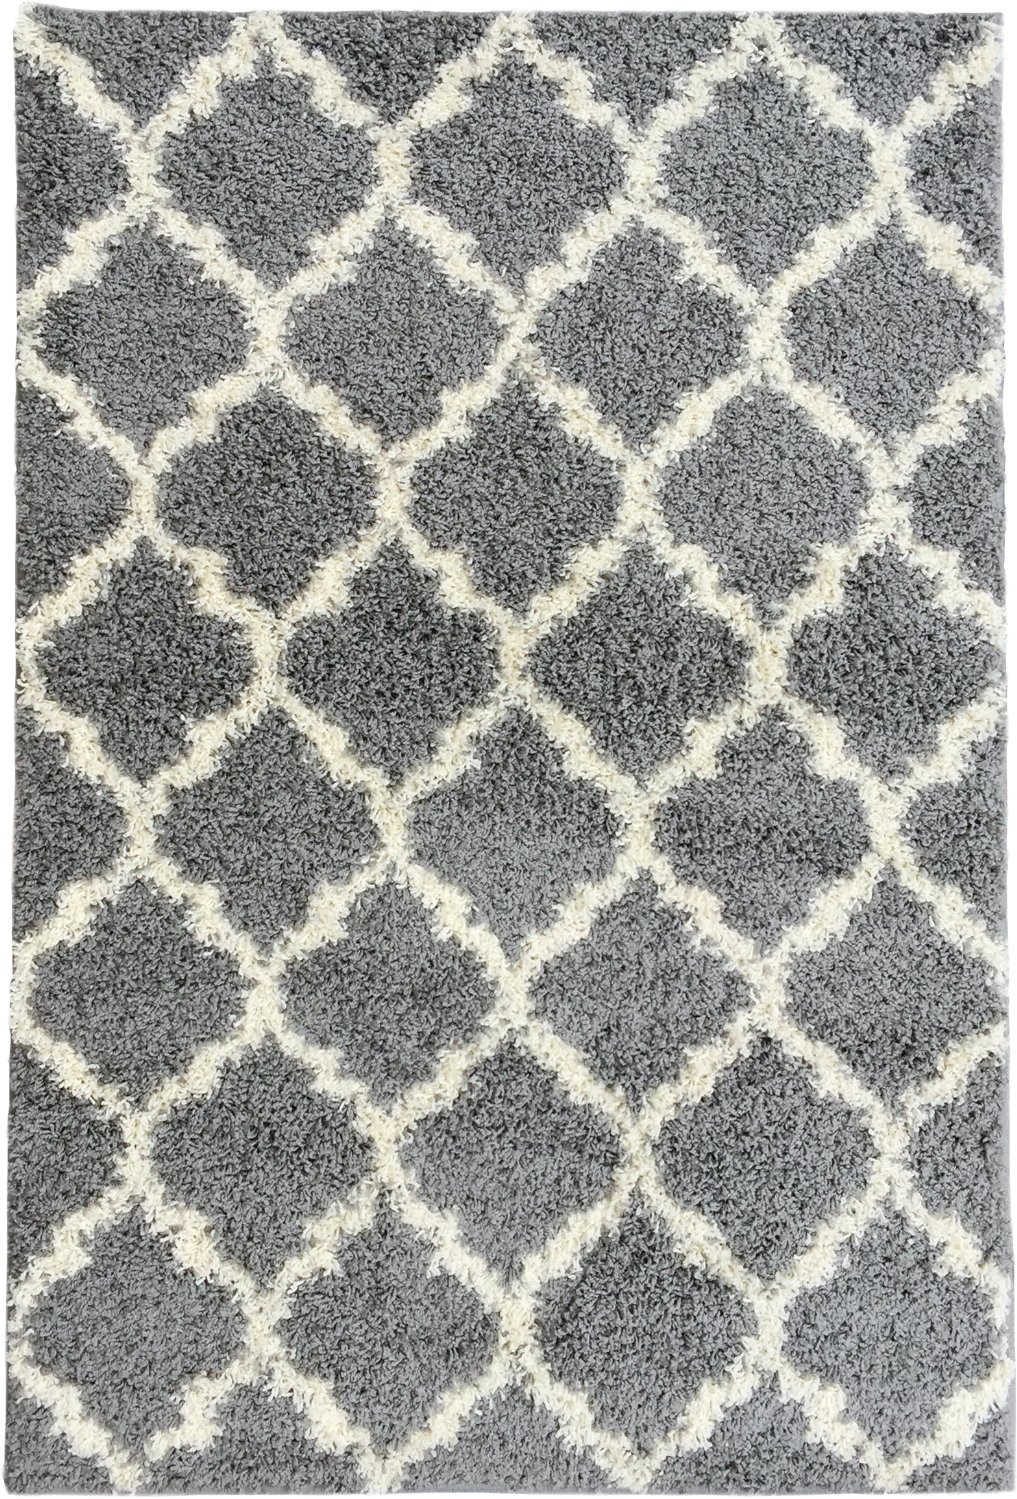 Ottomanson Ultimate Shaggy Collection Moroccan Trellis Design Shag Rug Contemporary Bedroom and Living room Soft Shag Rugs, Grey, 5'3'' L x 7'0'' W